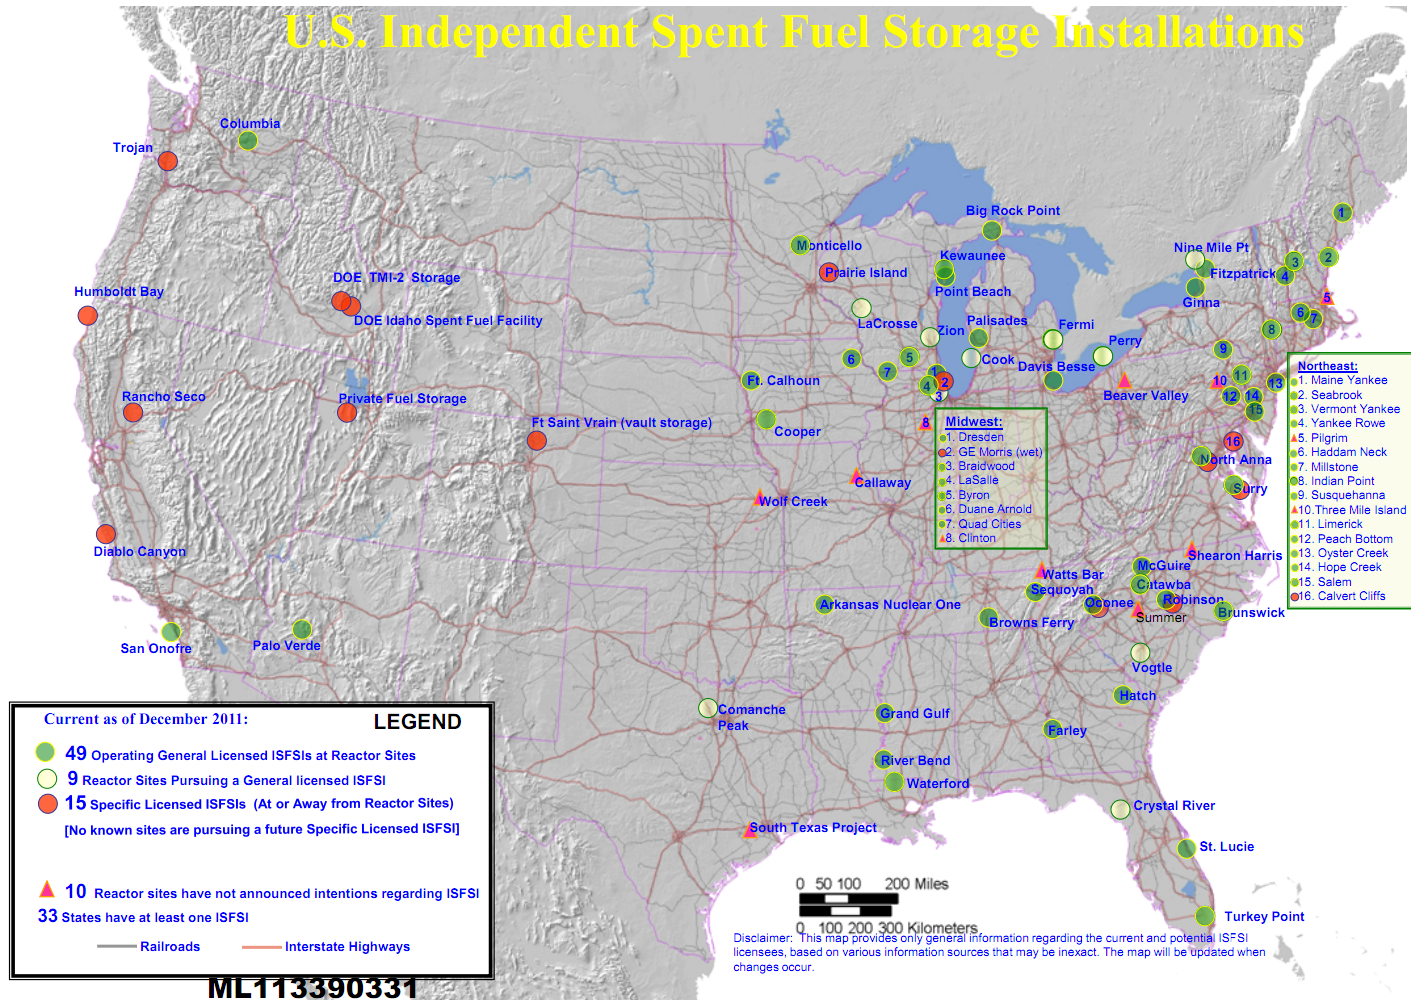 U.S. Independent Spent Fuel Storage Installations